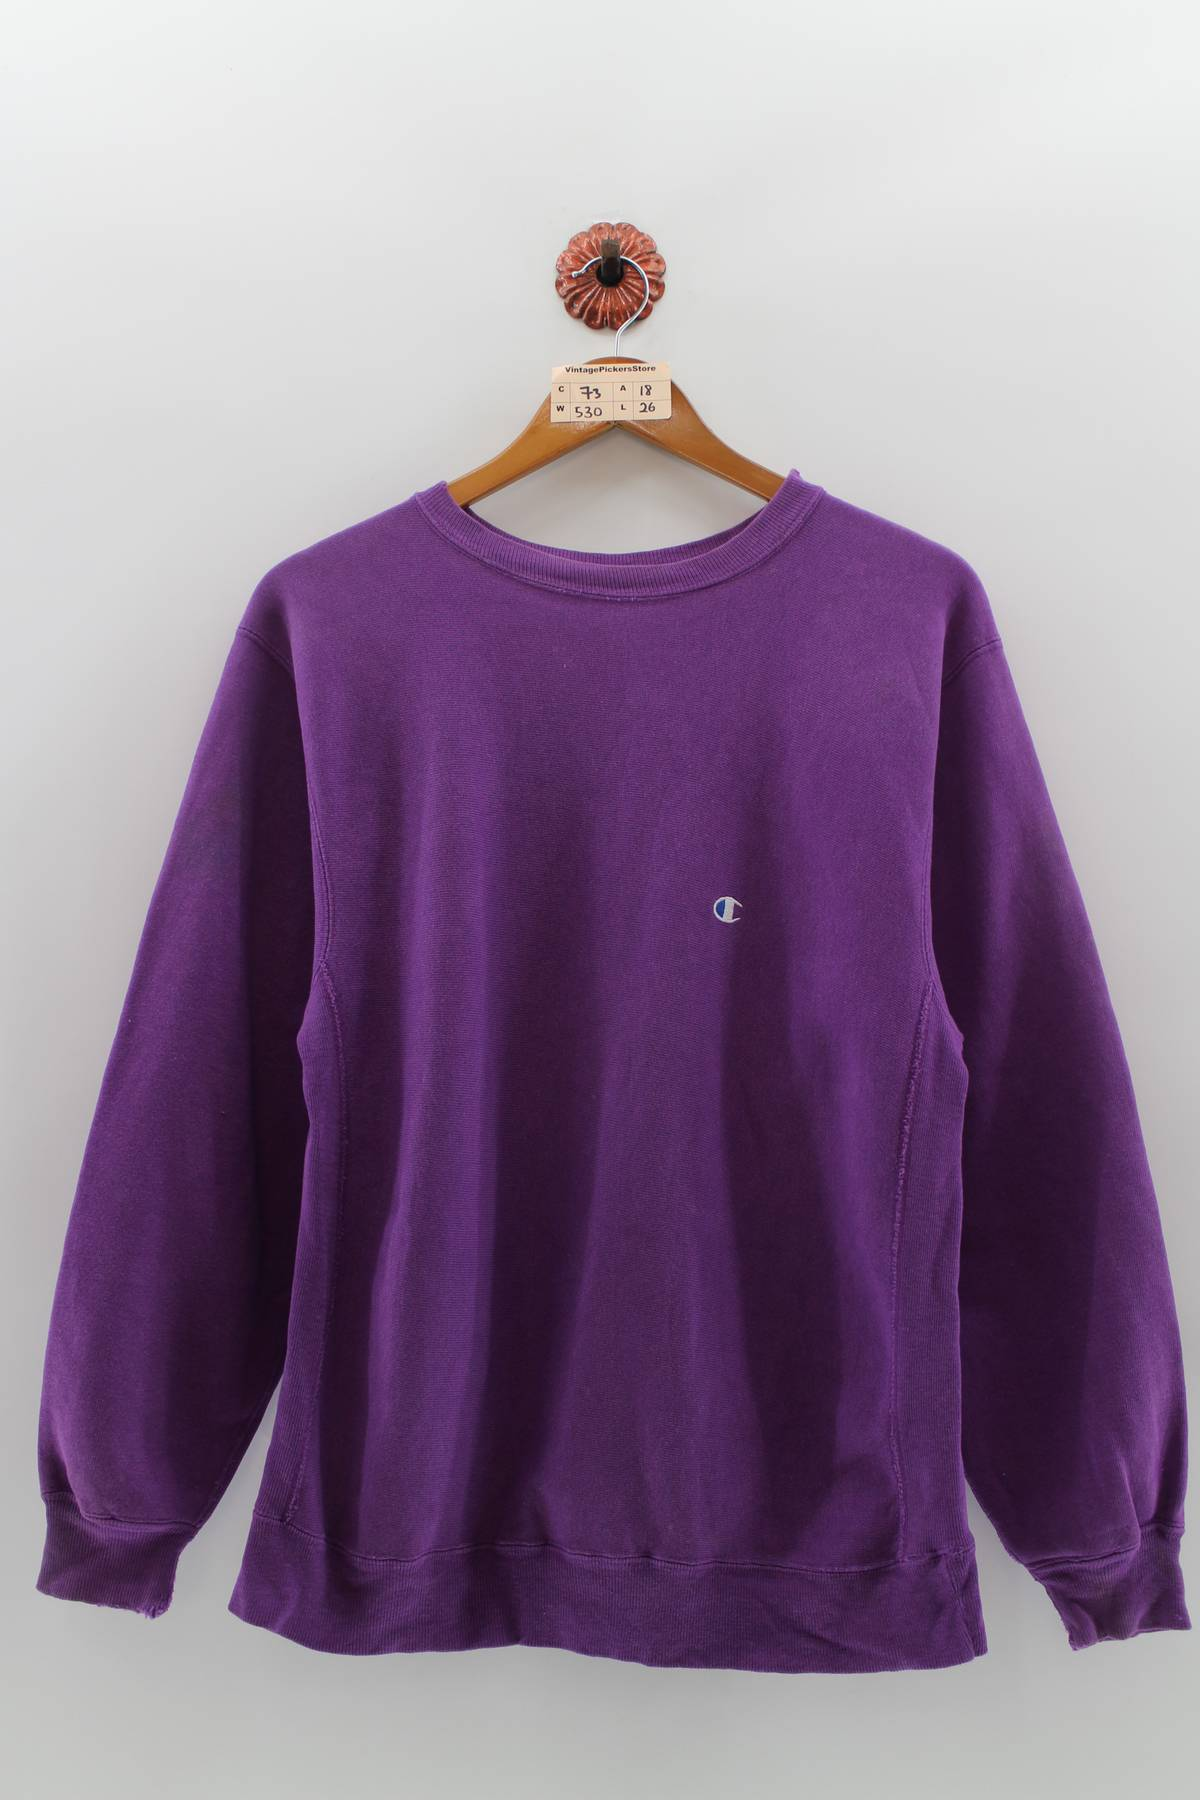 861f0c1e4 Champion ×. Vintage CHAMPION Pullover Jumper XLarge Women Champion  Authentic Small Logo Sportswear Champion Reverse Weave Purple ...